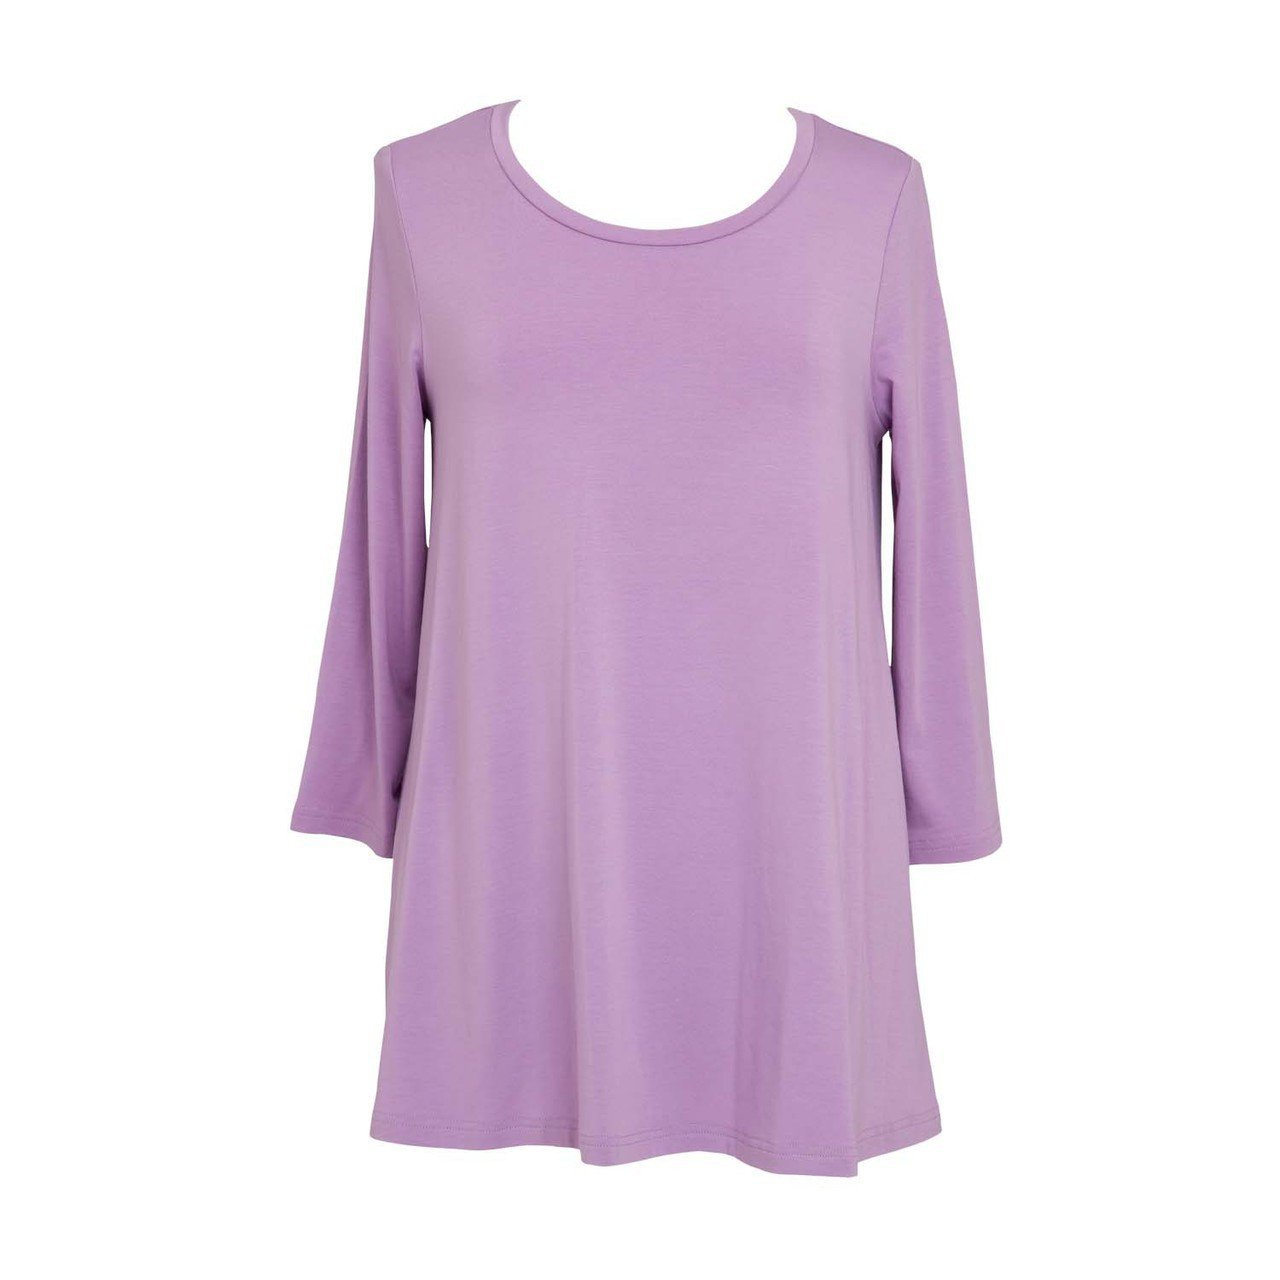 Clothing -Essential Tunics in Assorted Colors